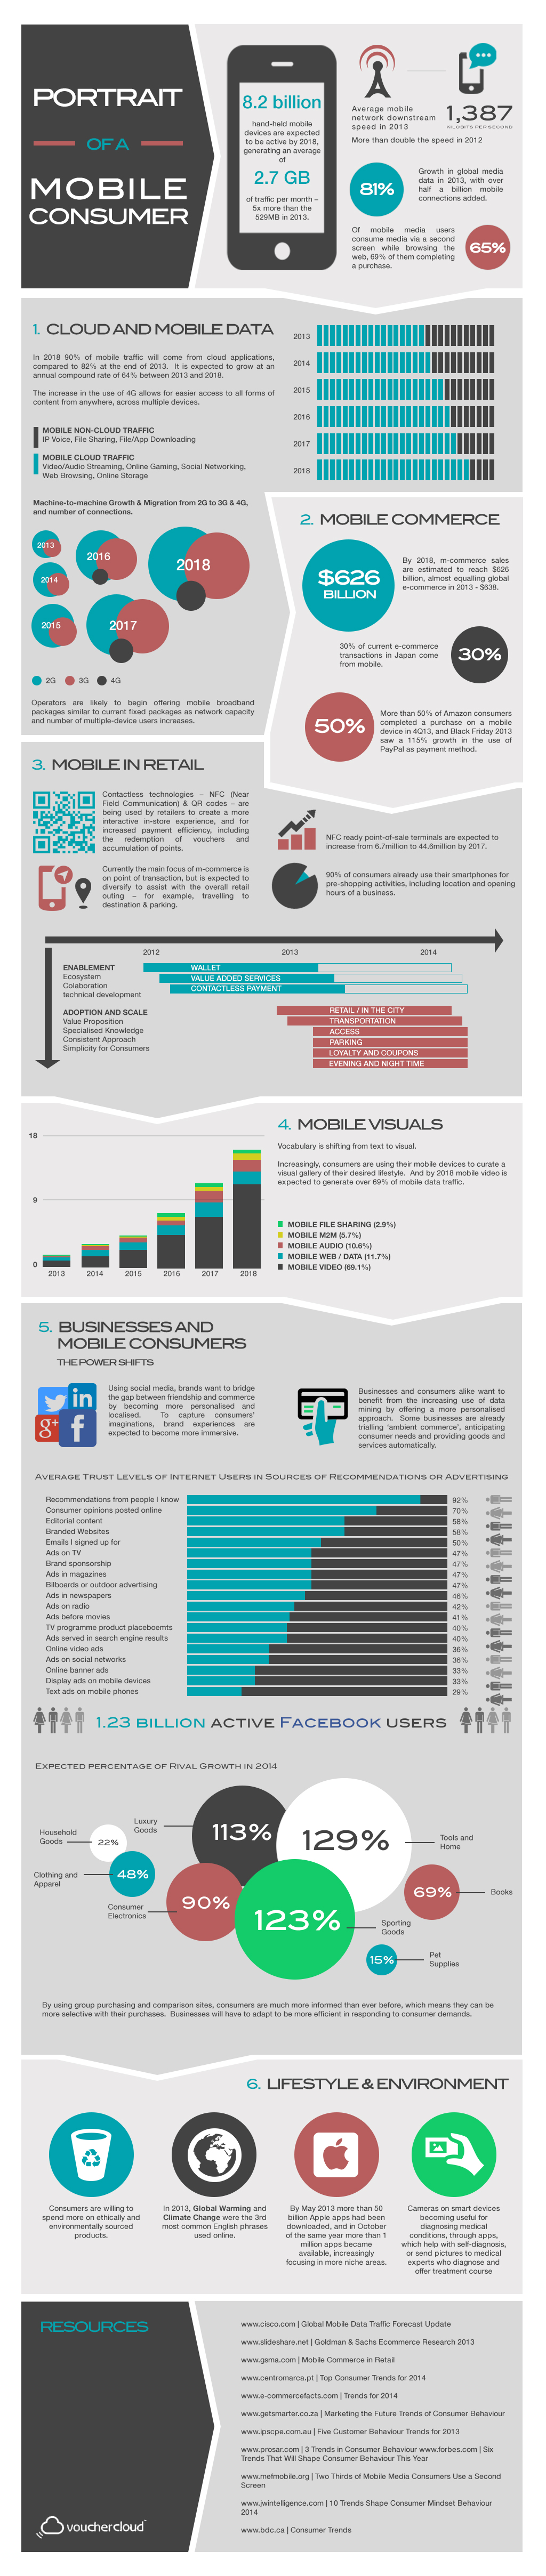 wersm-portrait of a mobile consumer infographic